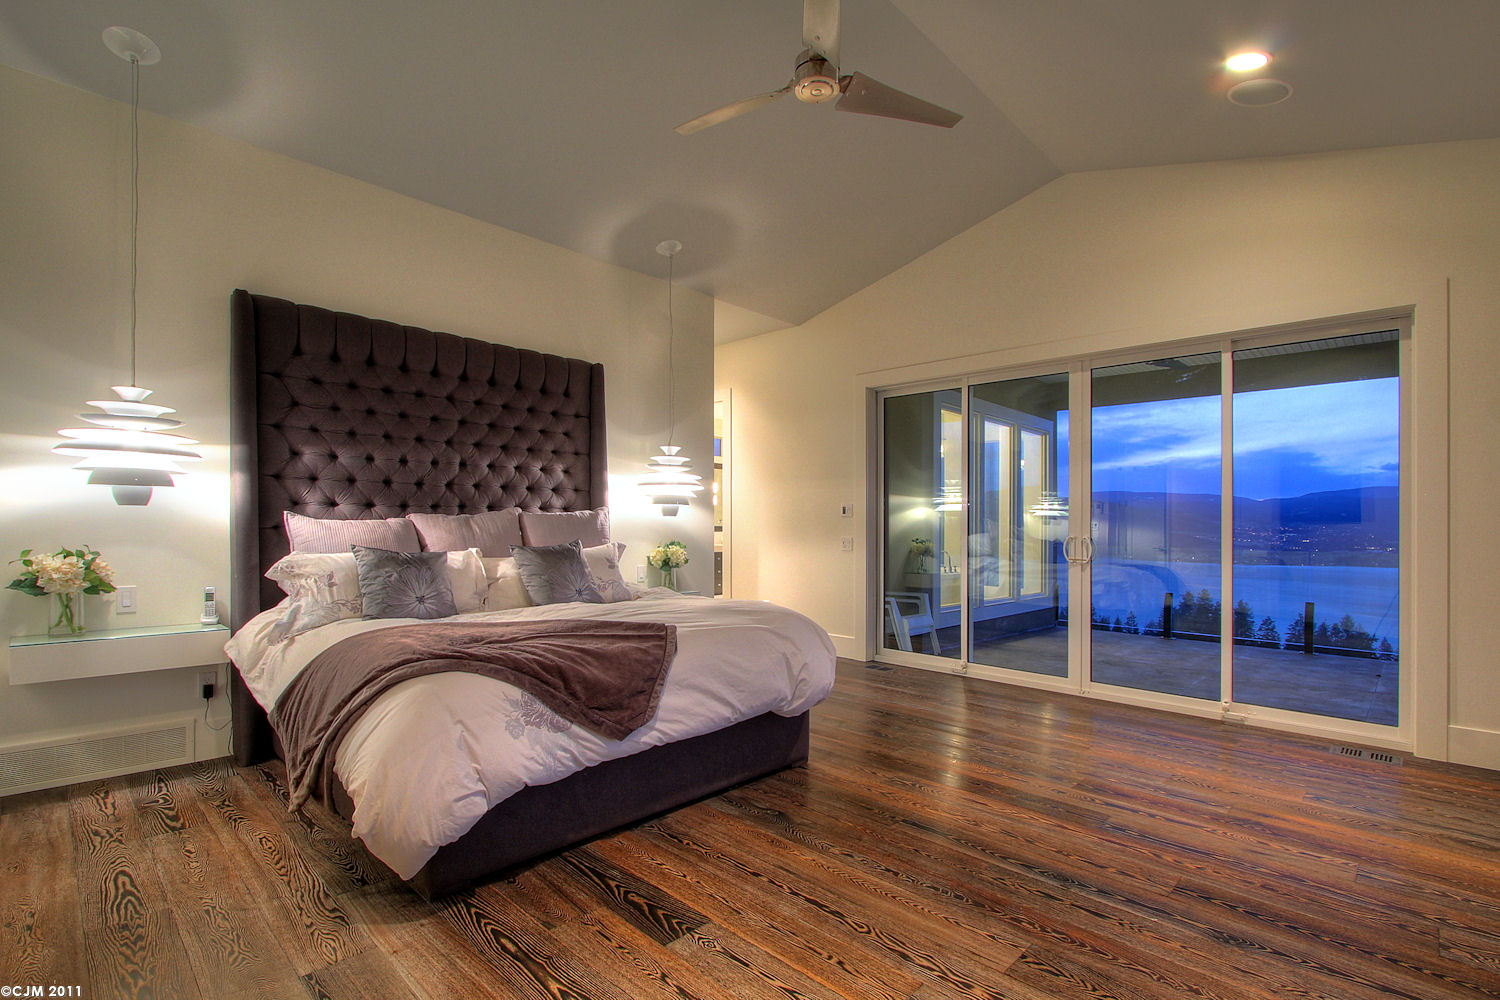 bedroom gallery. Bedroom Gallery  Photo Courtesy of Oasis Design HomeQuest Construction Installations by Pro Electric Ltd